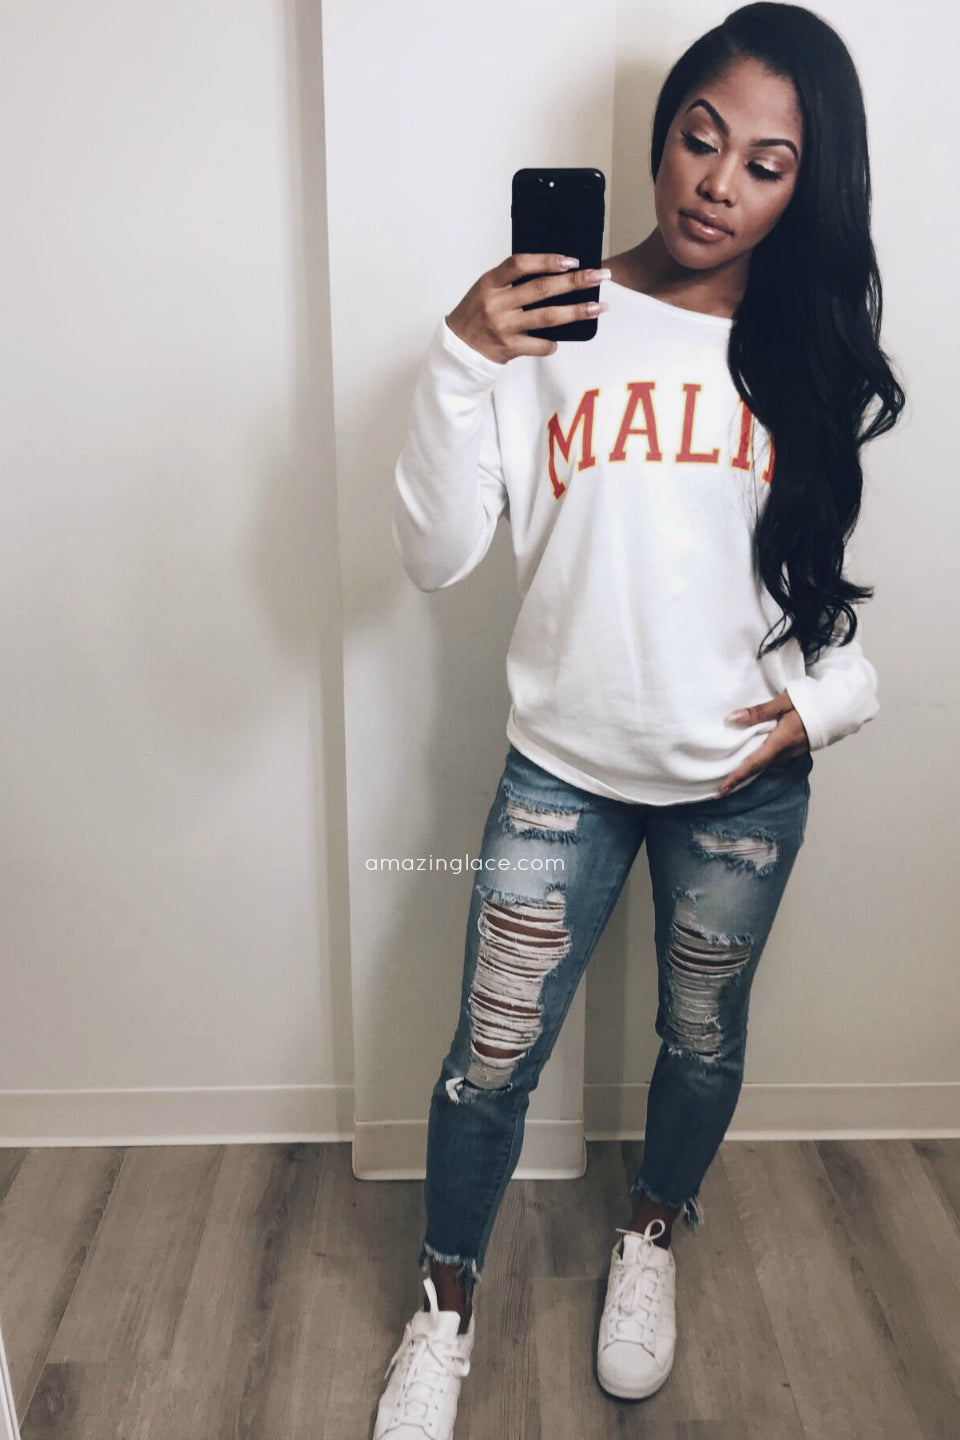 MALIBU TOP AND JEANS OUTFIT